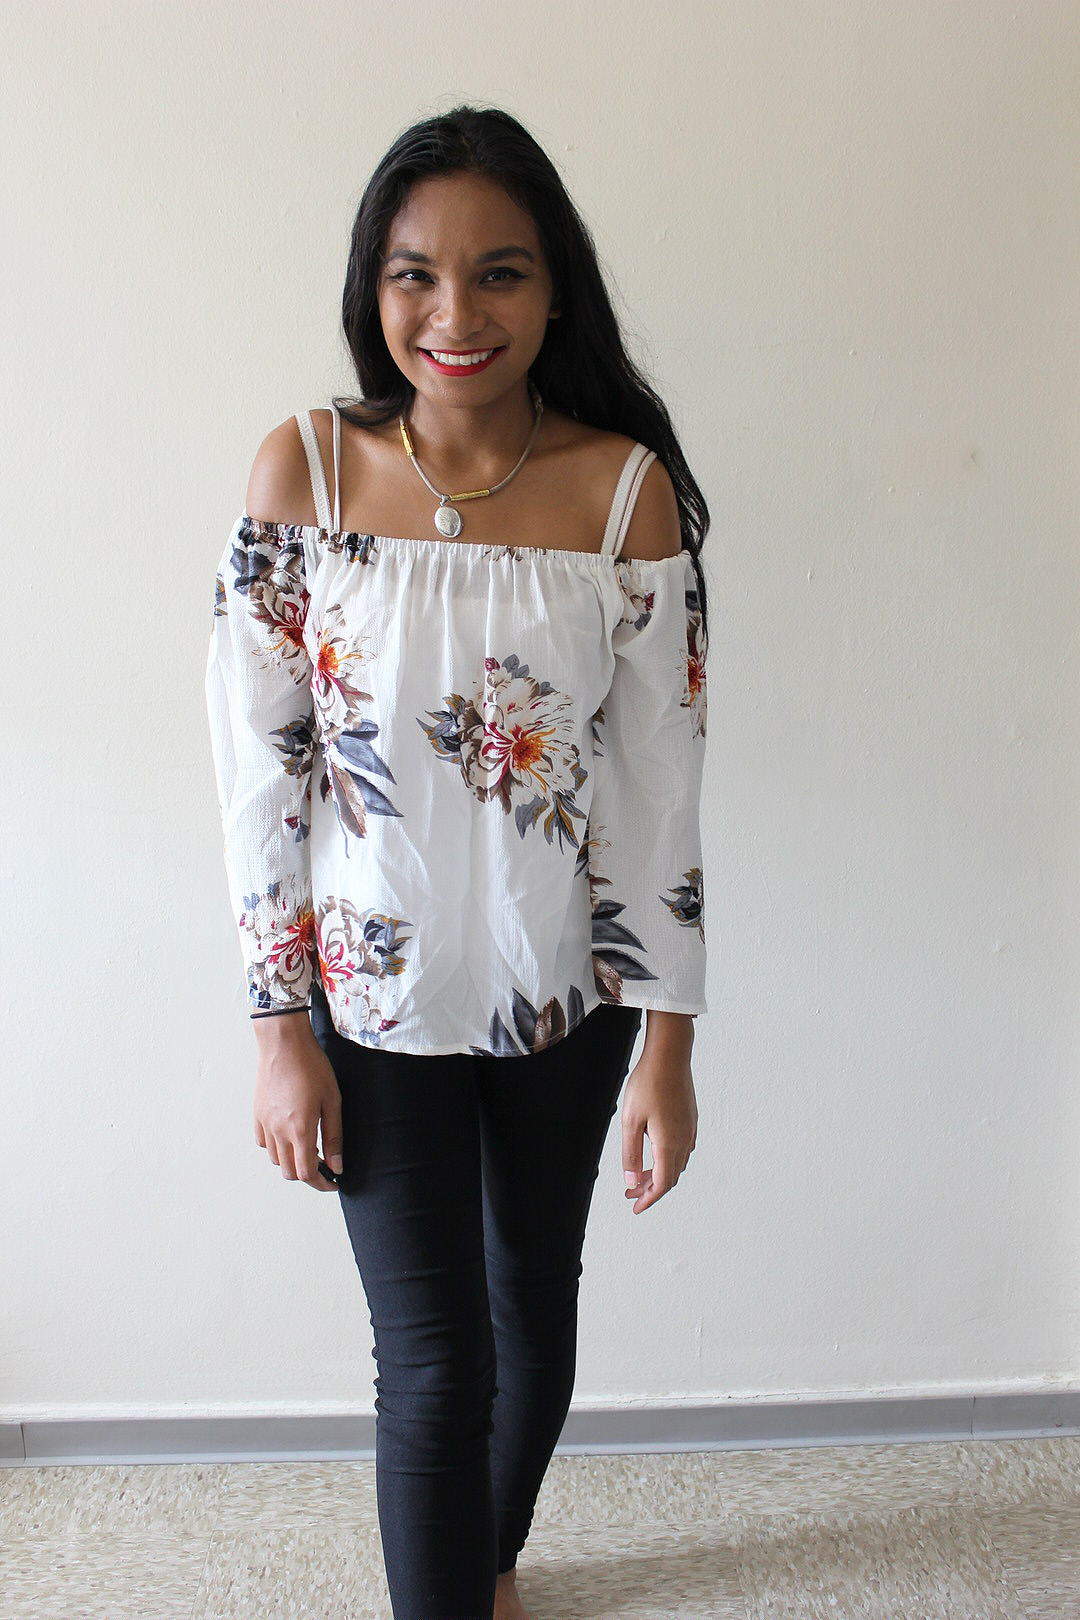 White-Floral-Top-Zaful-Style-Blogger-LINDATENCHITRAN-10-1616x1080